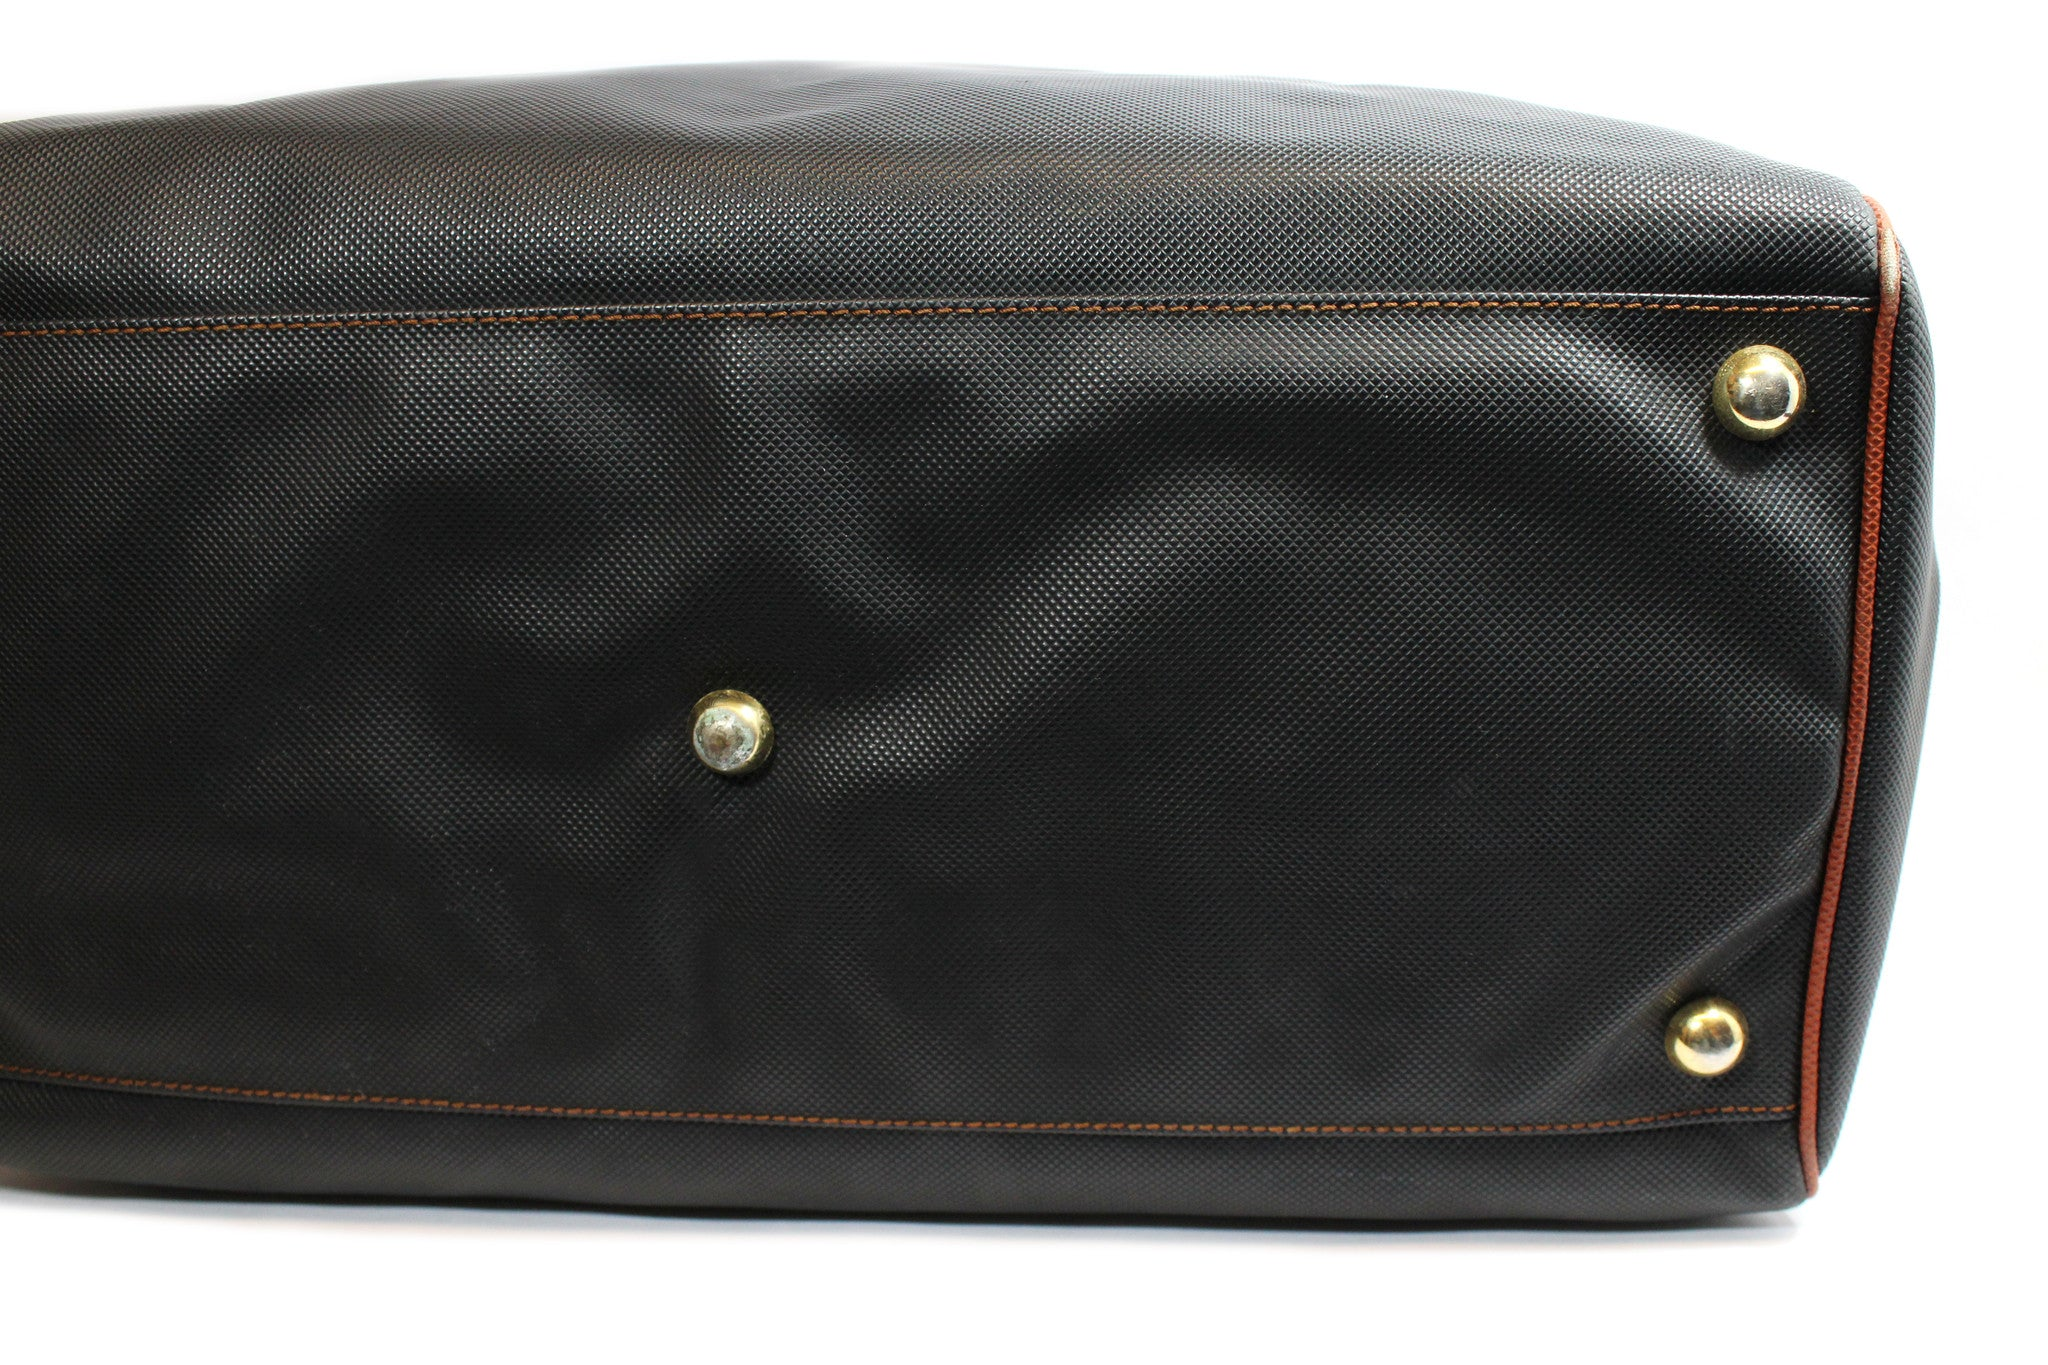 Bottega Veneta Black and Copper Leather Duffle Bag - Encore Consignment - 10